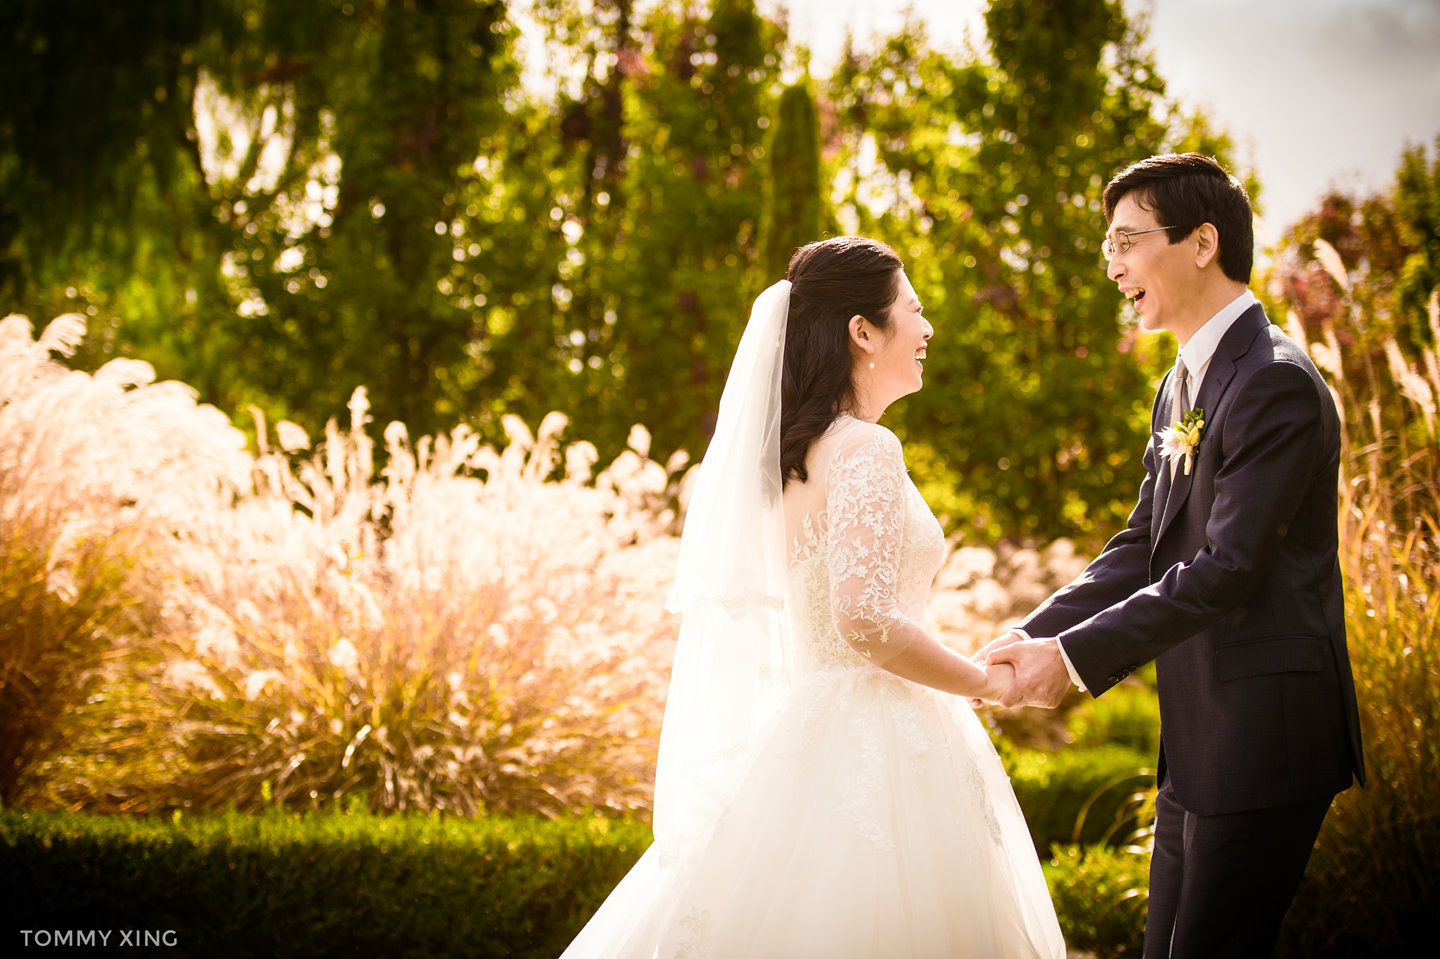 San Francisco Wedding Photography Valley Presbyterian Church WEDDING Tommy Xing Photography 洛杉矶旧金山婚礼婚纱照摄影师039.jpg